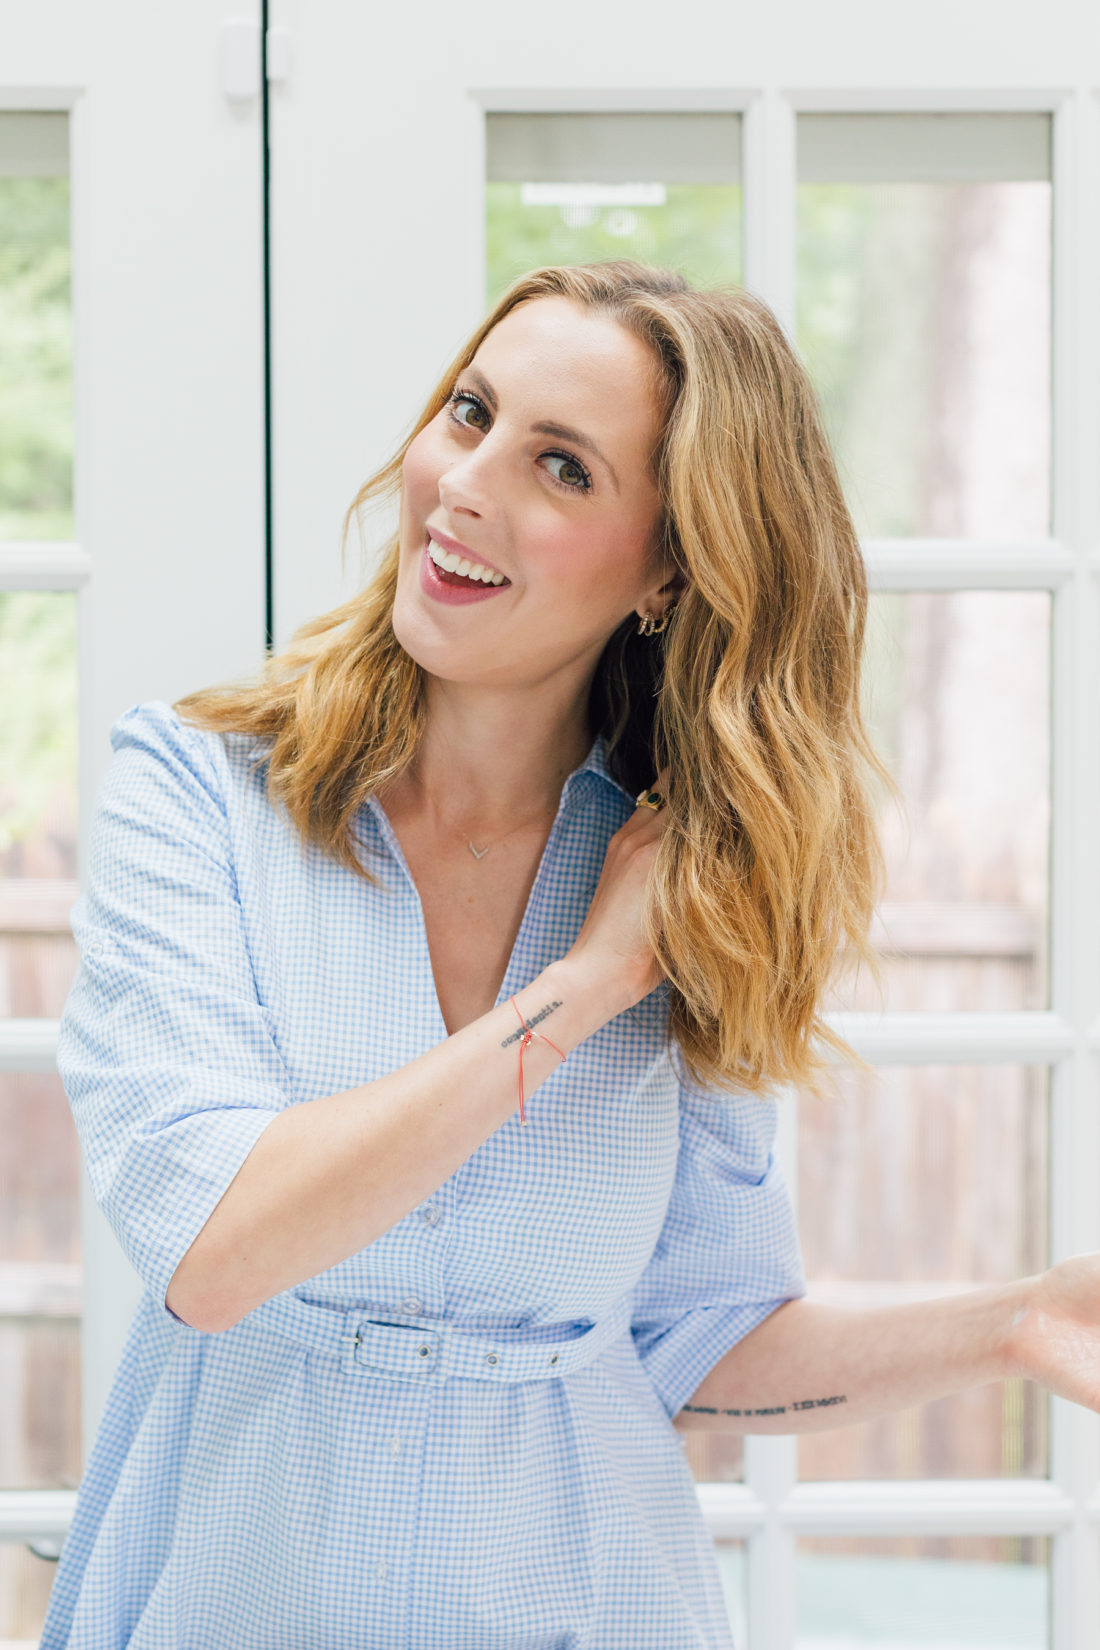 Eva Amurri Martino shares her favorite Triple Threat Split End Remedy from Rita Hazan